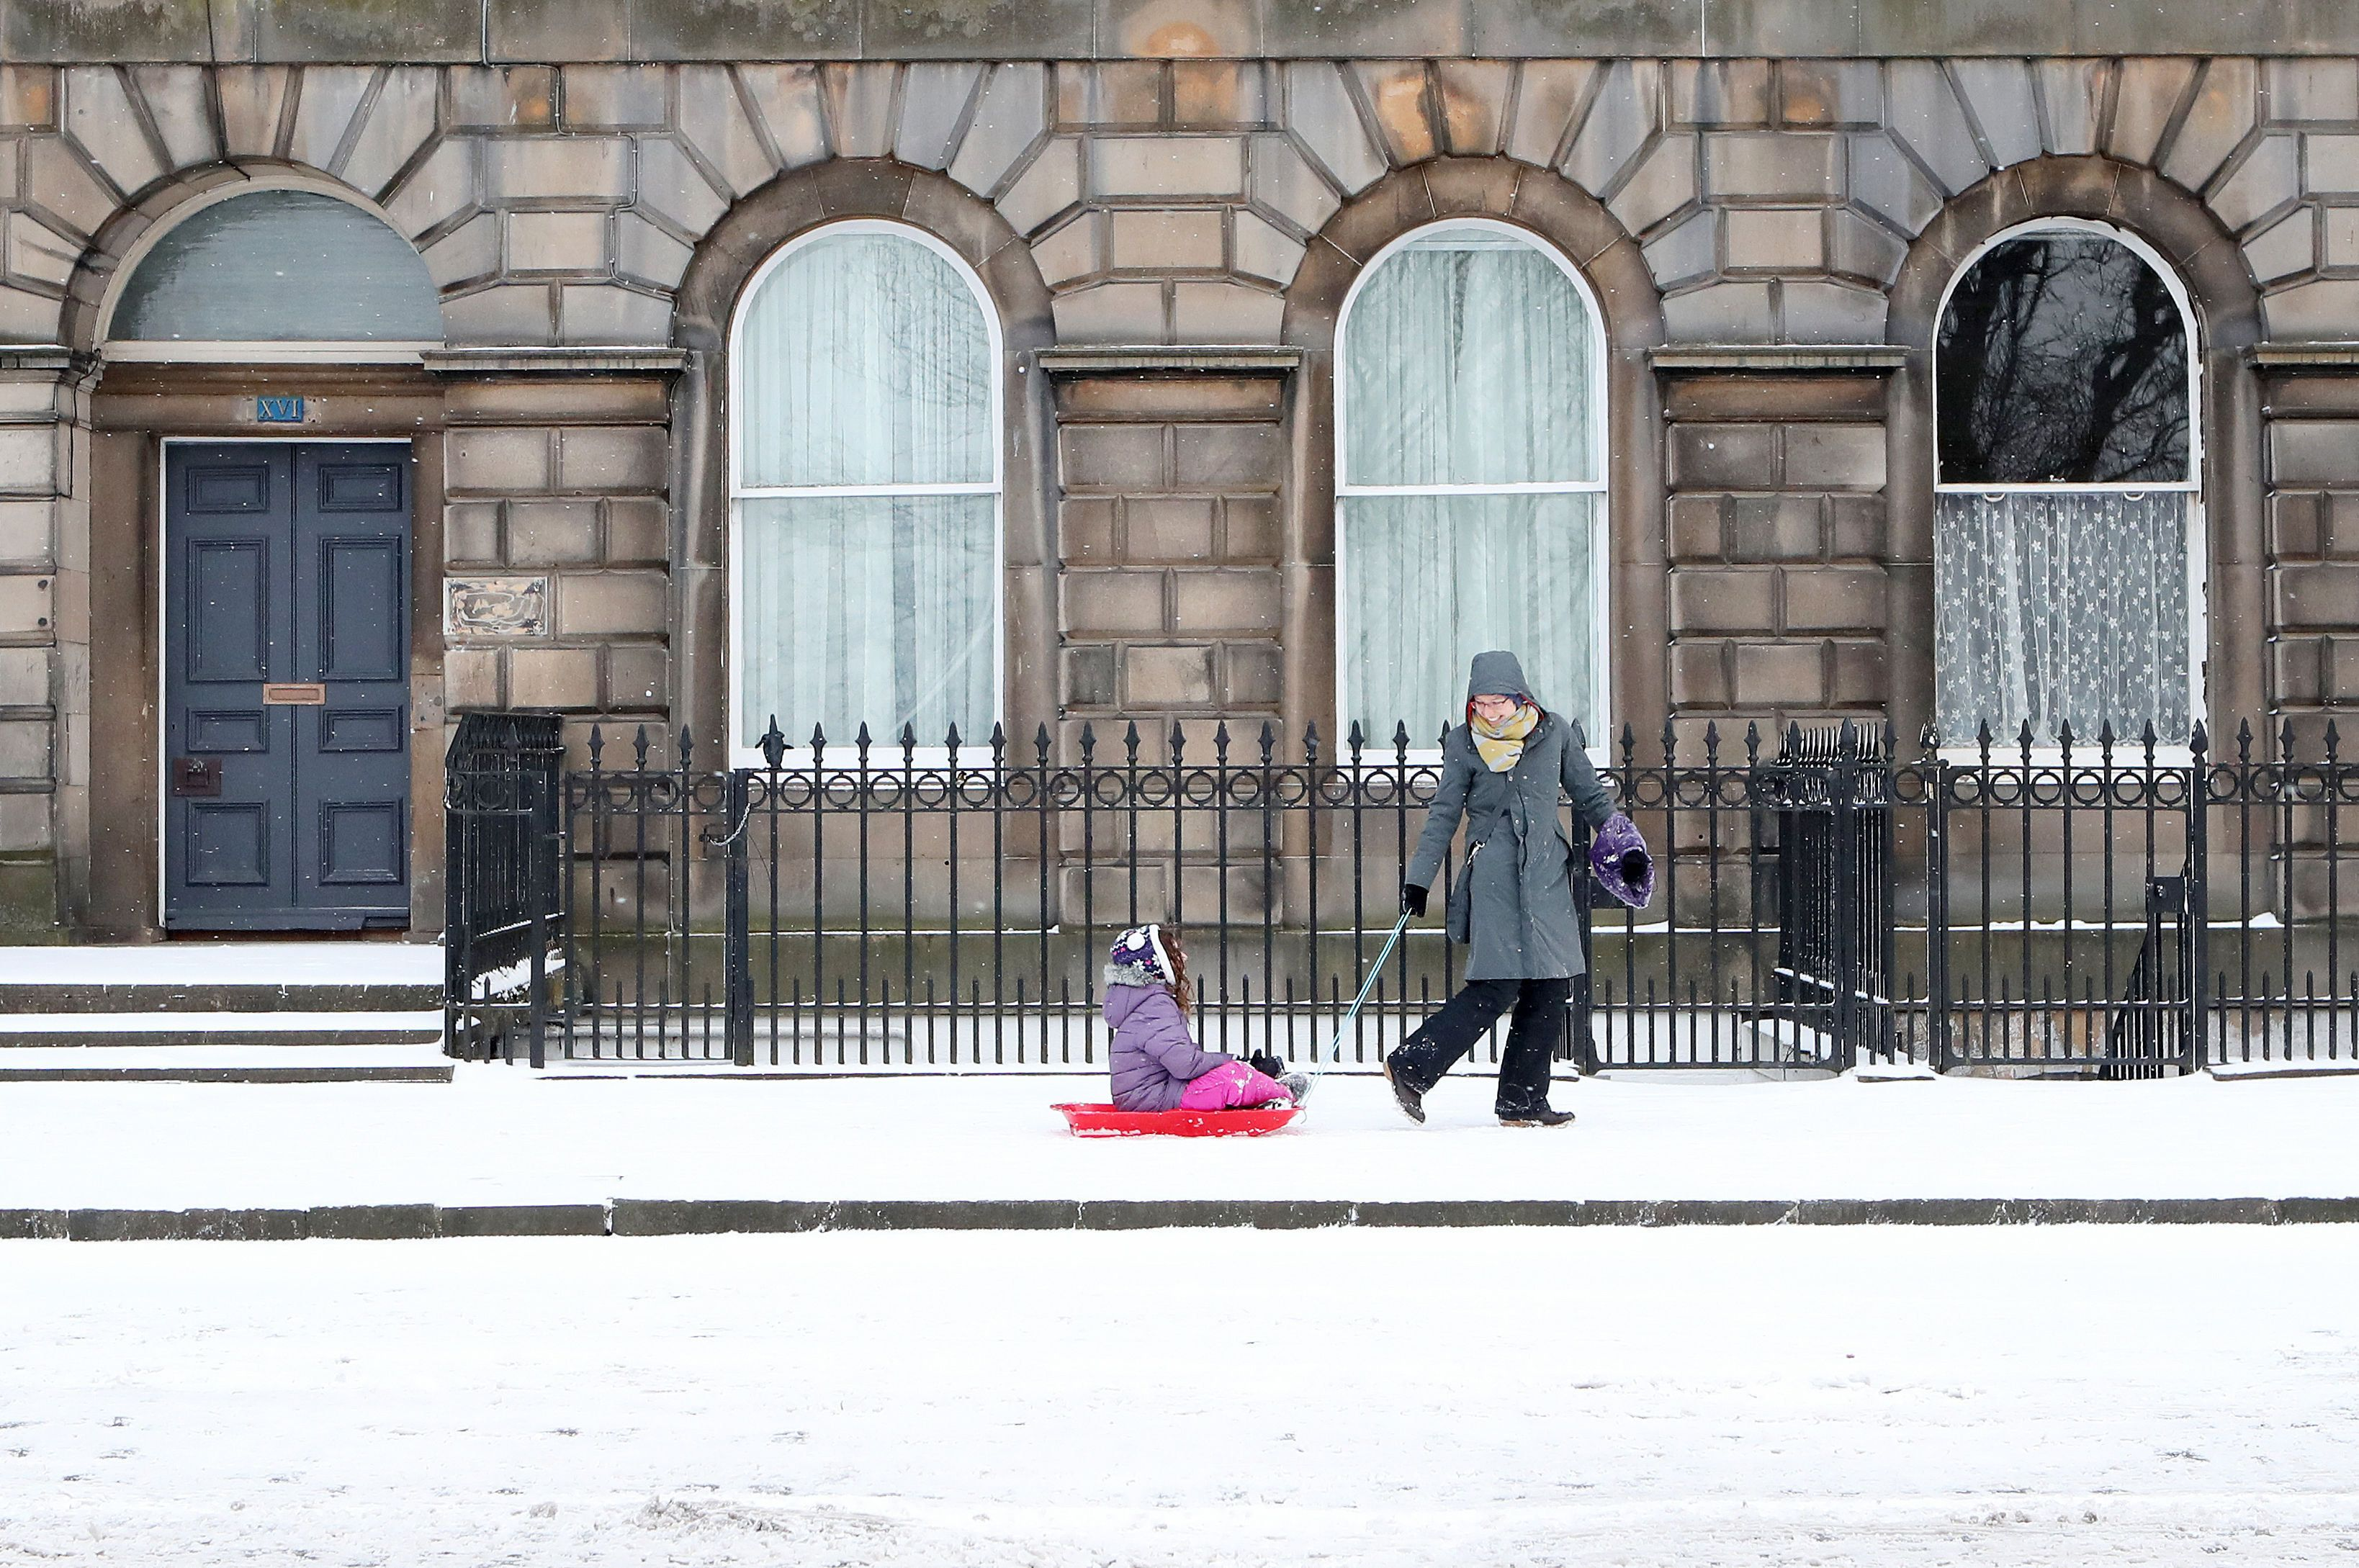 <strong>A child is pulled in a sledge along Royal Terrace in Edinburgh, as the 'Beast from the East' brings wintry weather and freezing temperatures to much of the country. </strong>